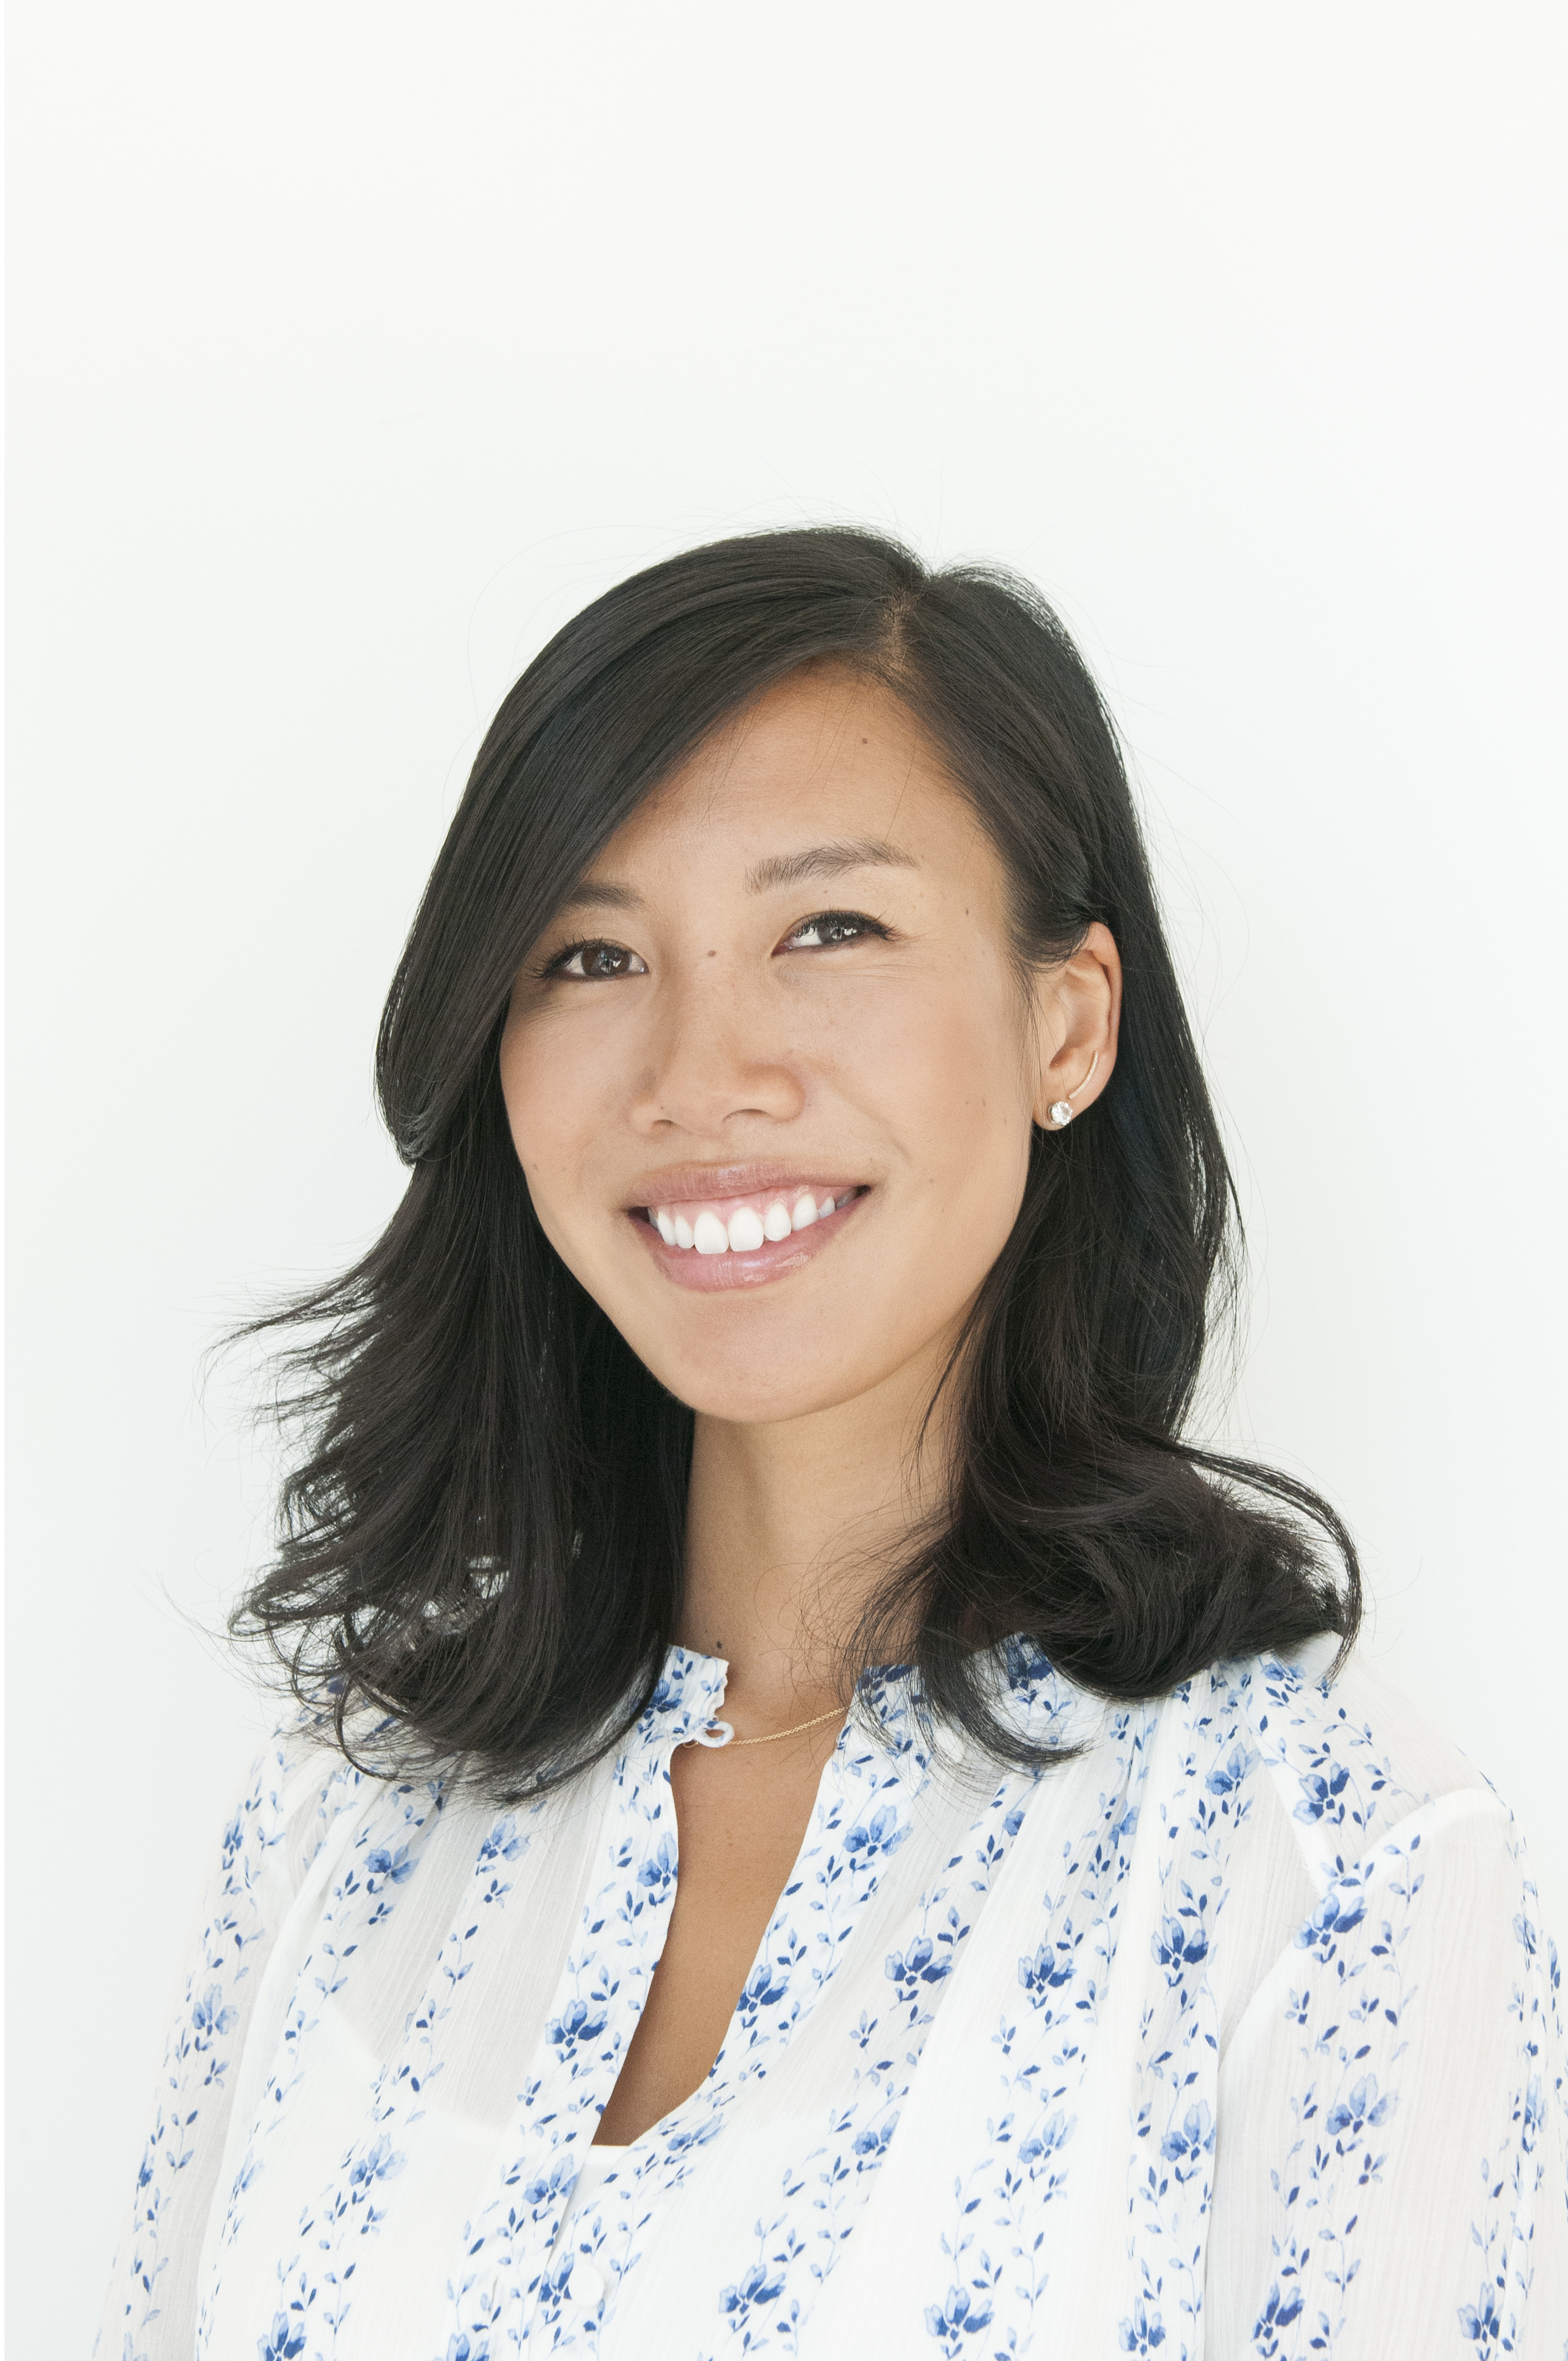 Natalie Tran Upped To Co-Exec Director For CAA Foundation – Deadline